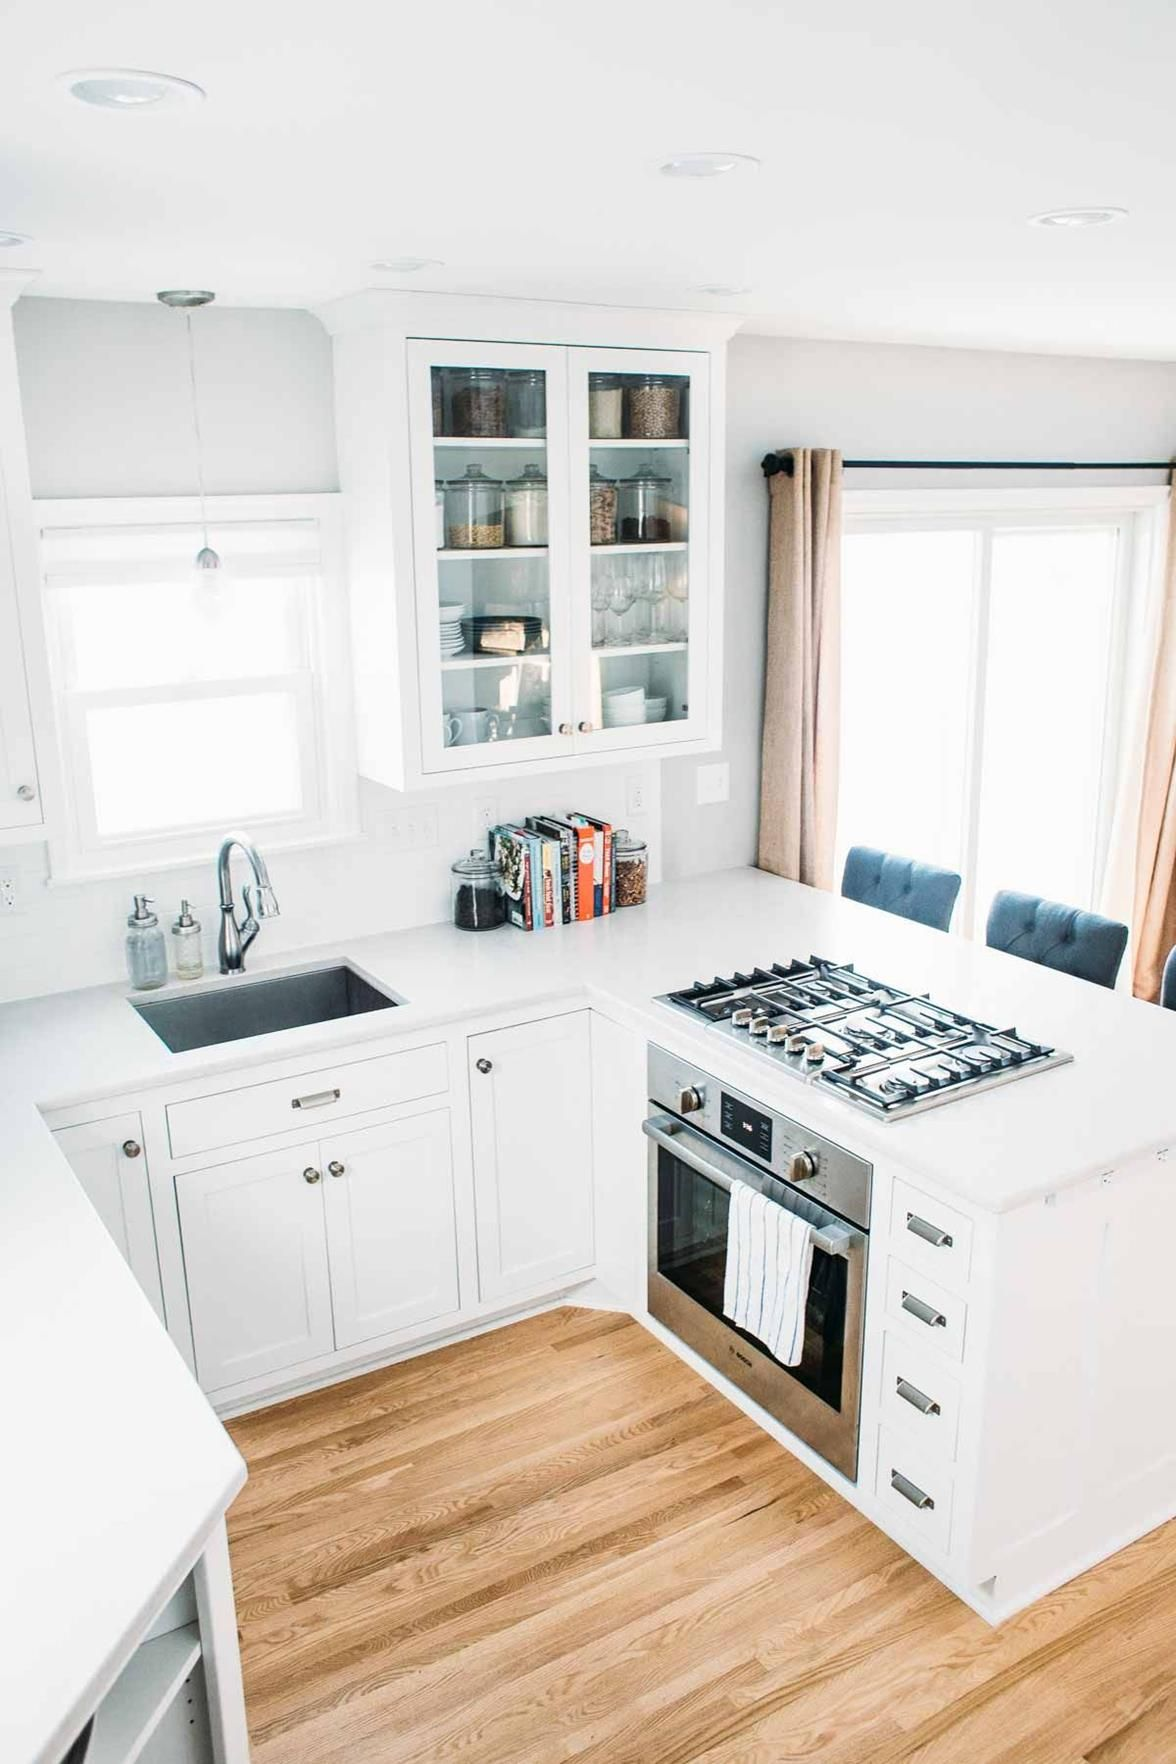 Remodeling Kitchen Without Permit